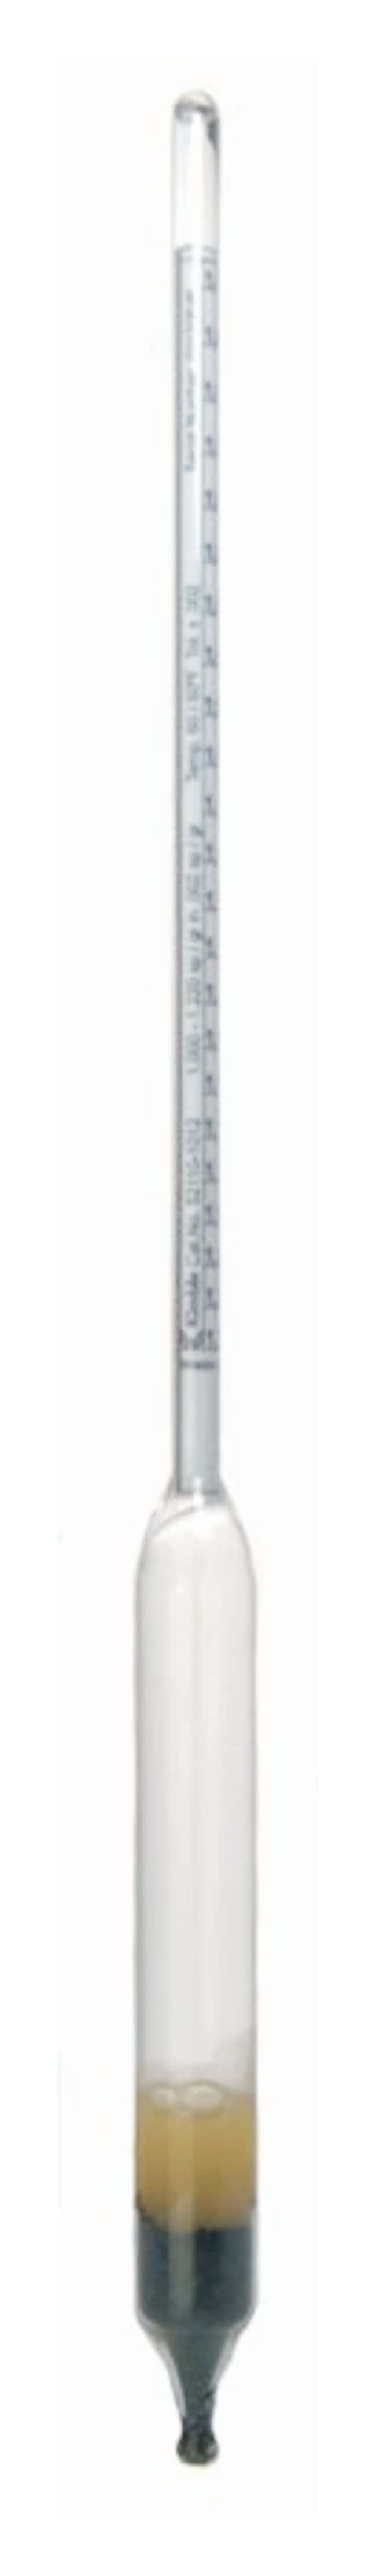 DWK Life Sciences Kimble Chase Salt and Brine Hydrometers Graduated from